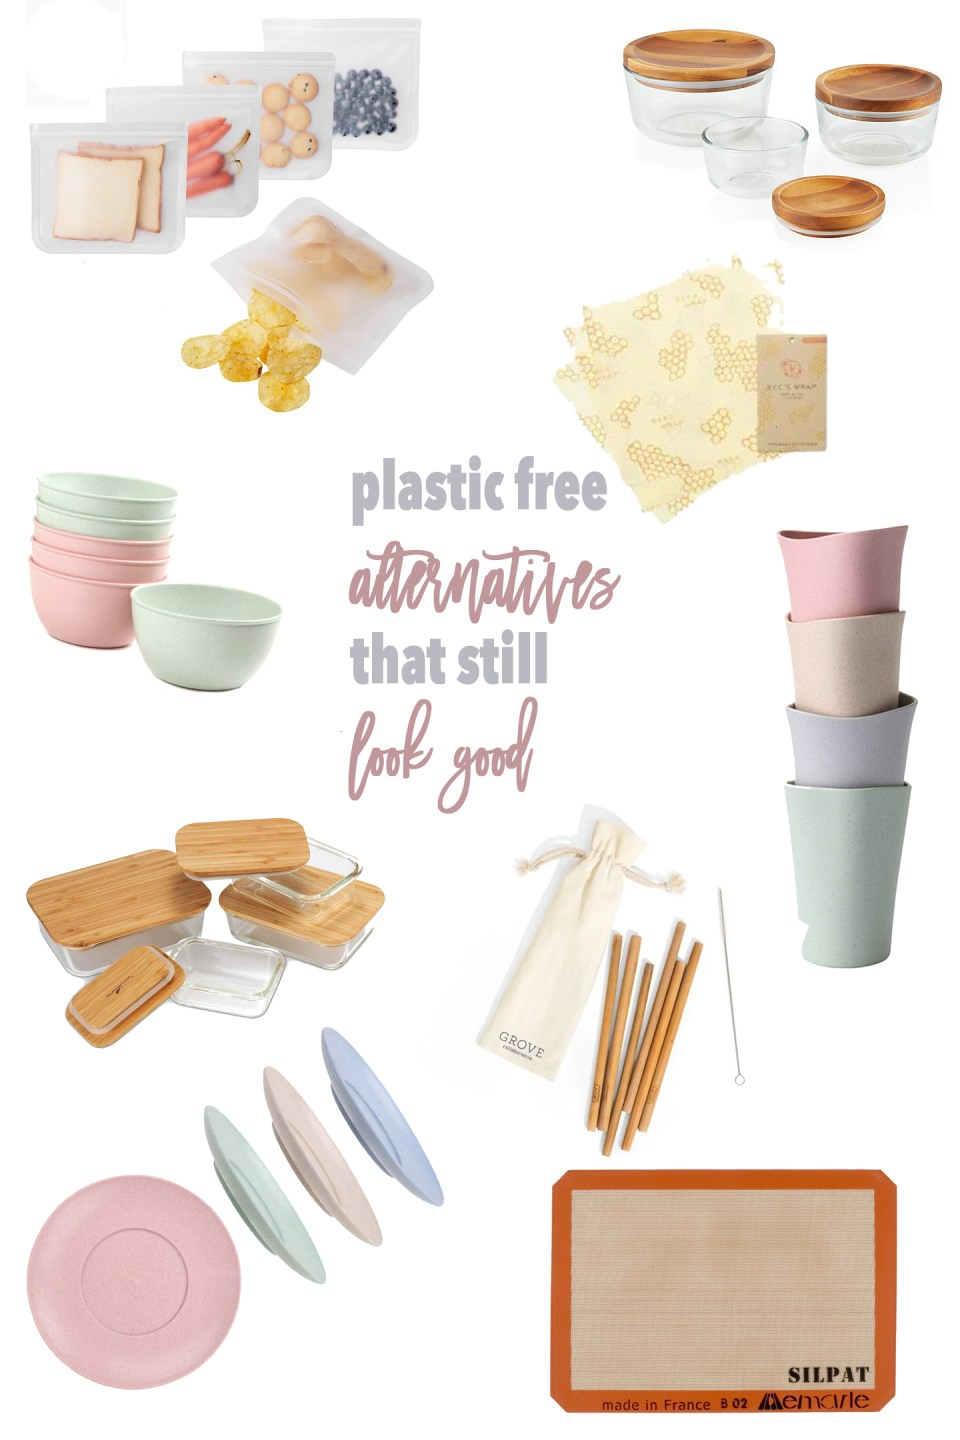 plastic free alternatives for your kitchen